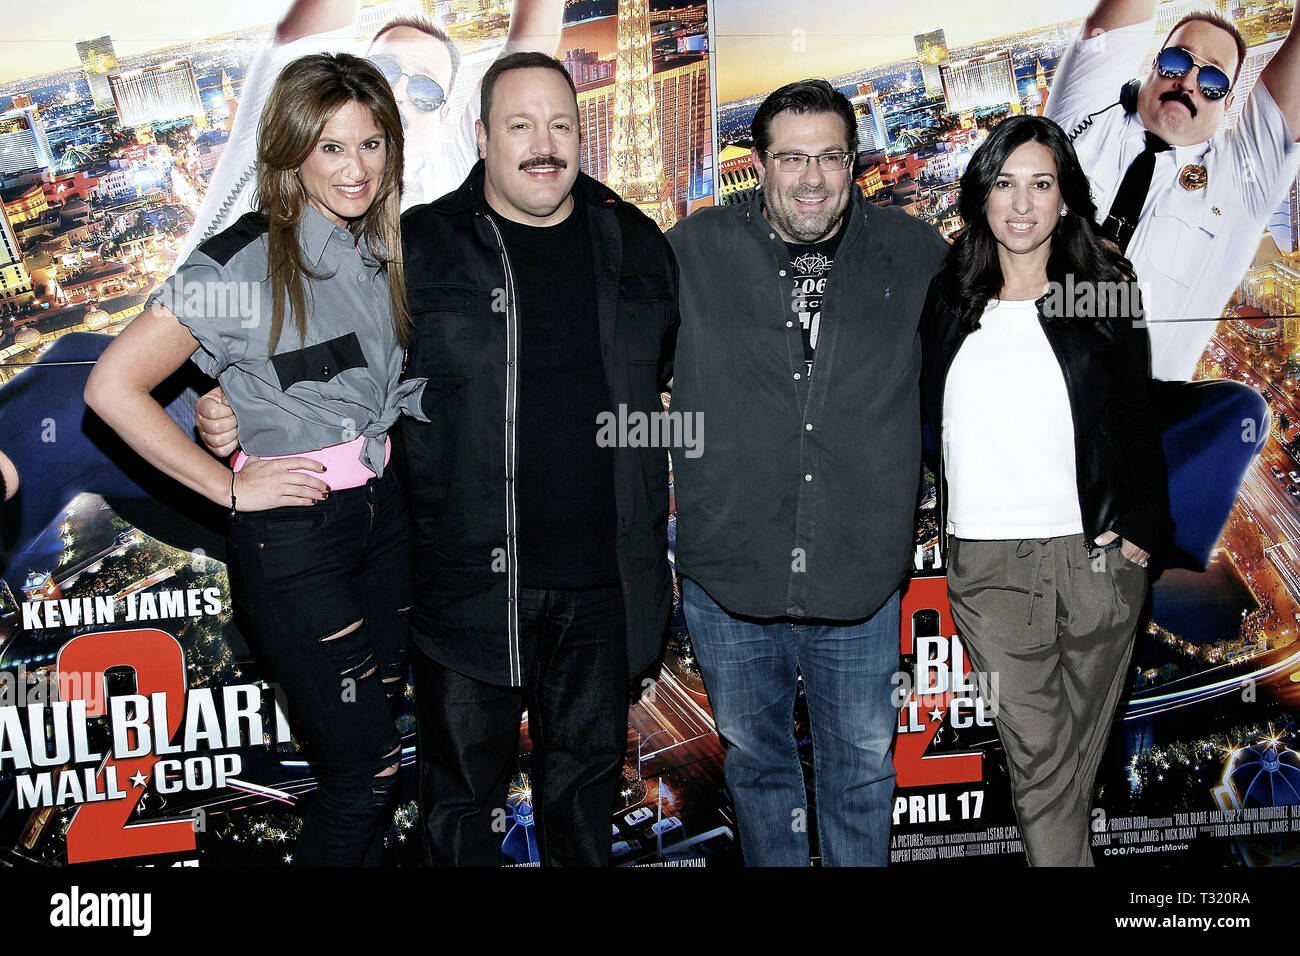 New York, USA. 13 Apr, 2015.  Media personalities, Denise Albert, (L), and, Melissa Musen Gerstein, (R) of The Moms join actor, Kevin James, director, Andy Fickman, (C) in a photo at The Moms 'Paul Blart: Mall Cop 2' Screening at AMC Loews Lincoln Square 13 on April 13, 2015 in New York, NY . Credit: Steve Mack/S.D. Mack Pictures/Alamy - Stock Image